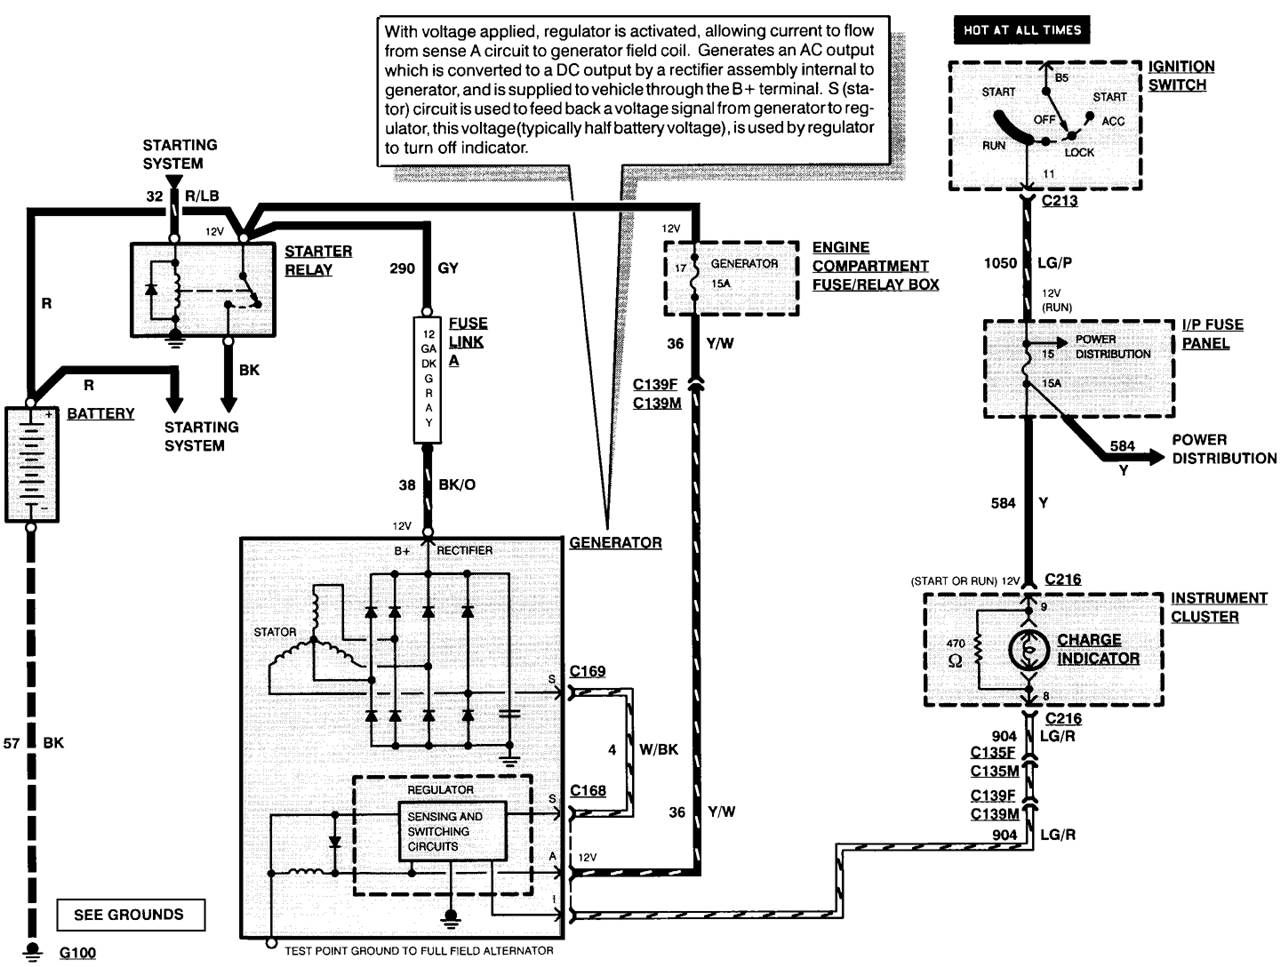 Ford alternator wiring diagram internal regulator ford alternator wiring diagrams carsut understand cars and 2001 ford taurus alternator wiring diagram at reclaimingppi.co